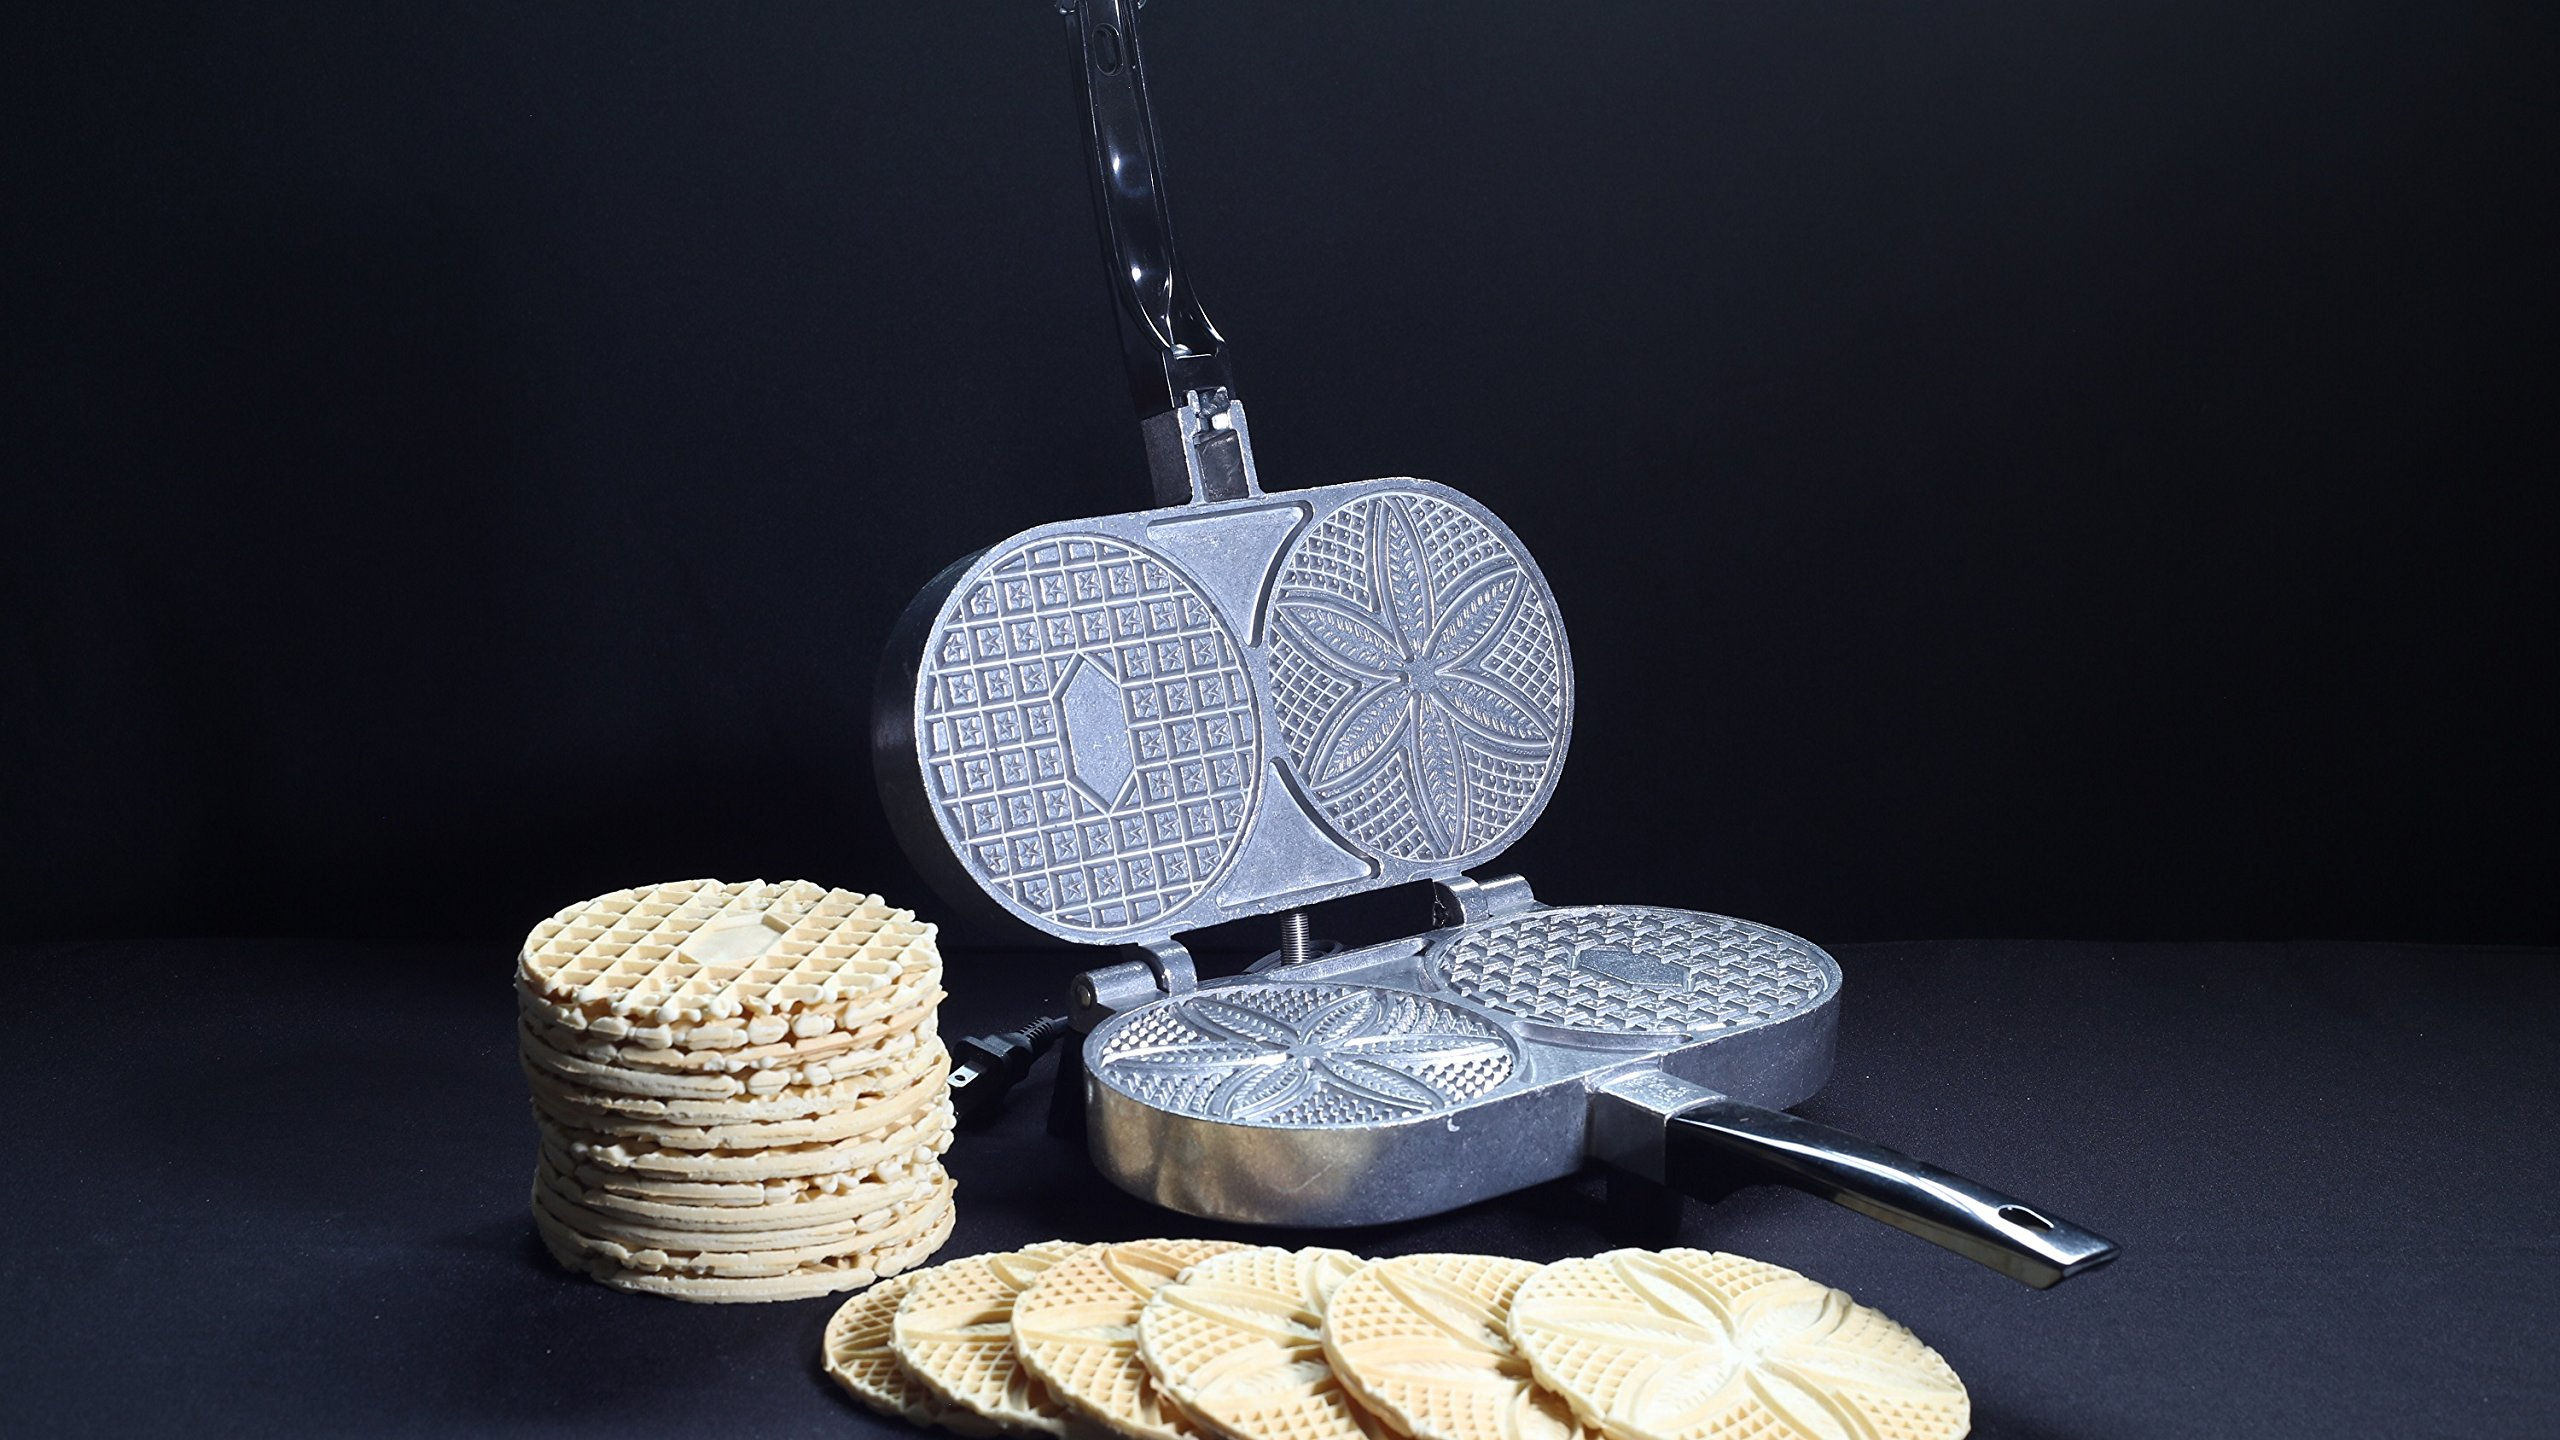 Palmer Pizzelle Maker Classic by Palmer